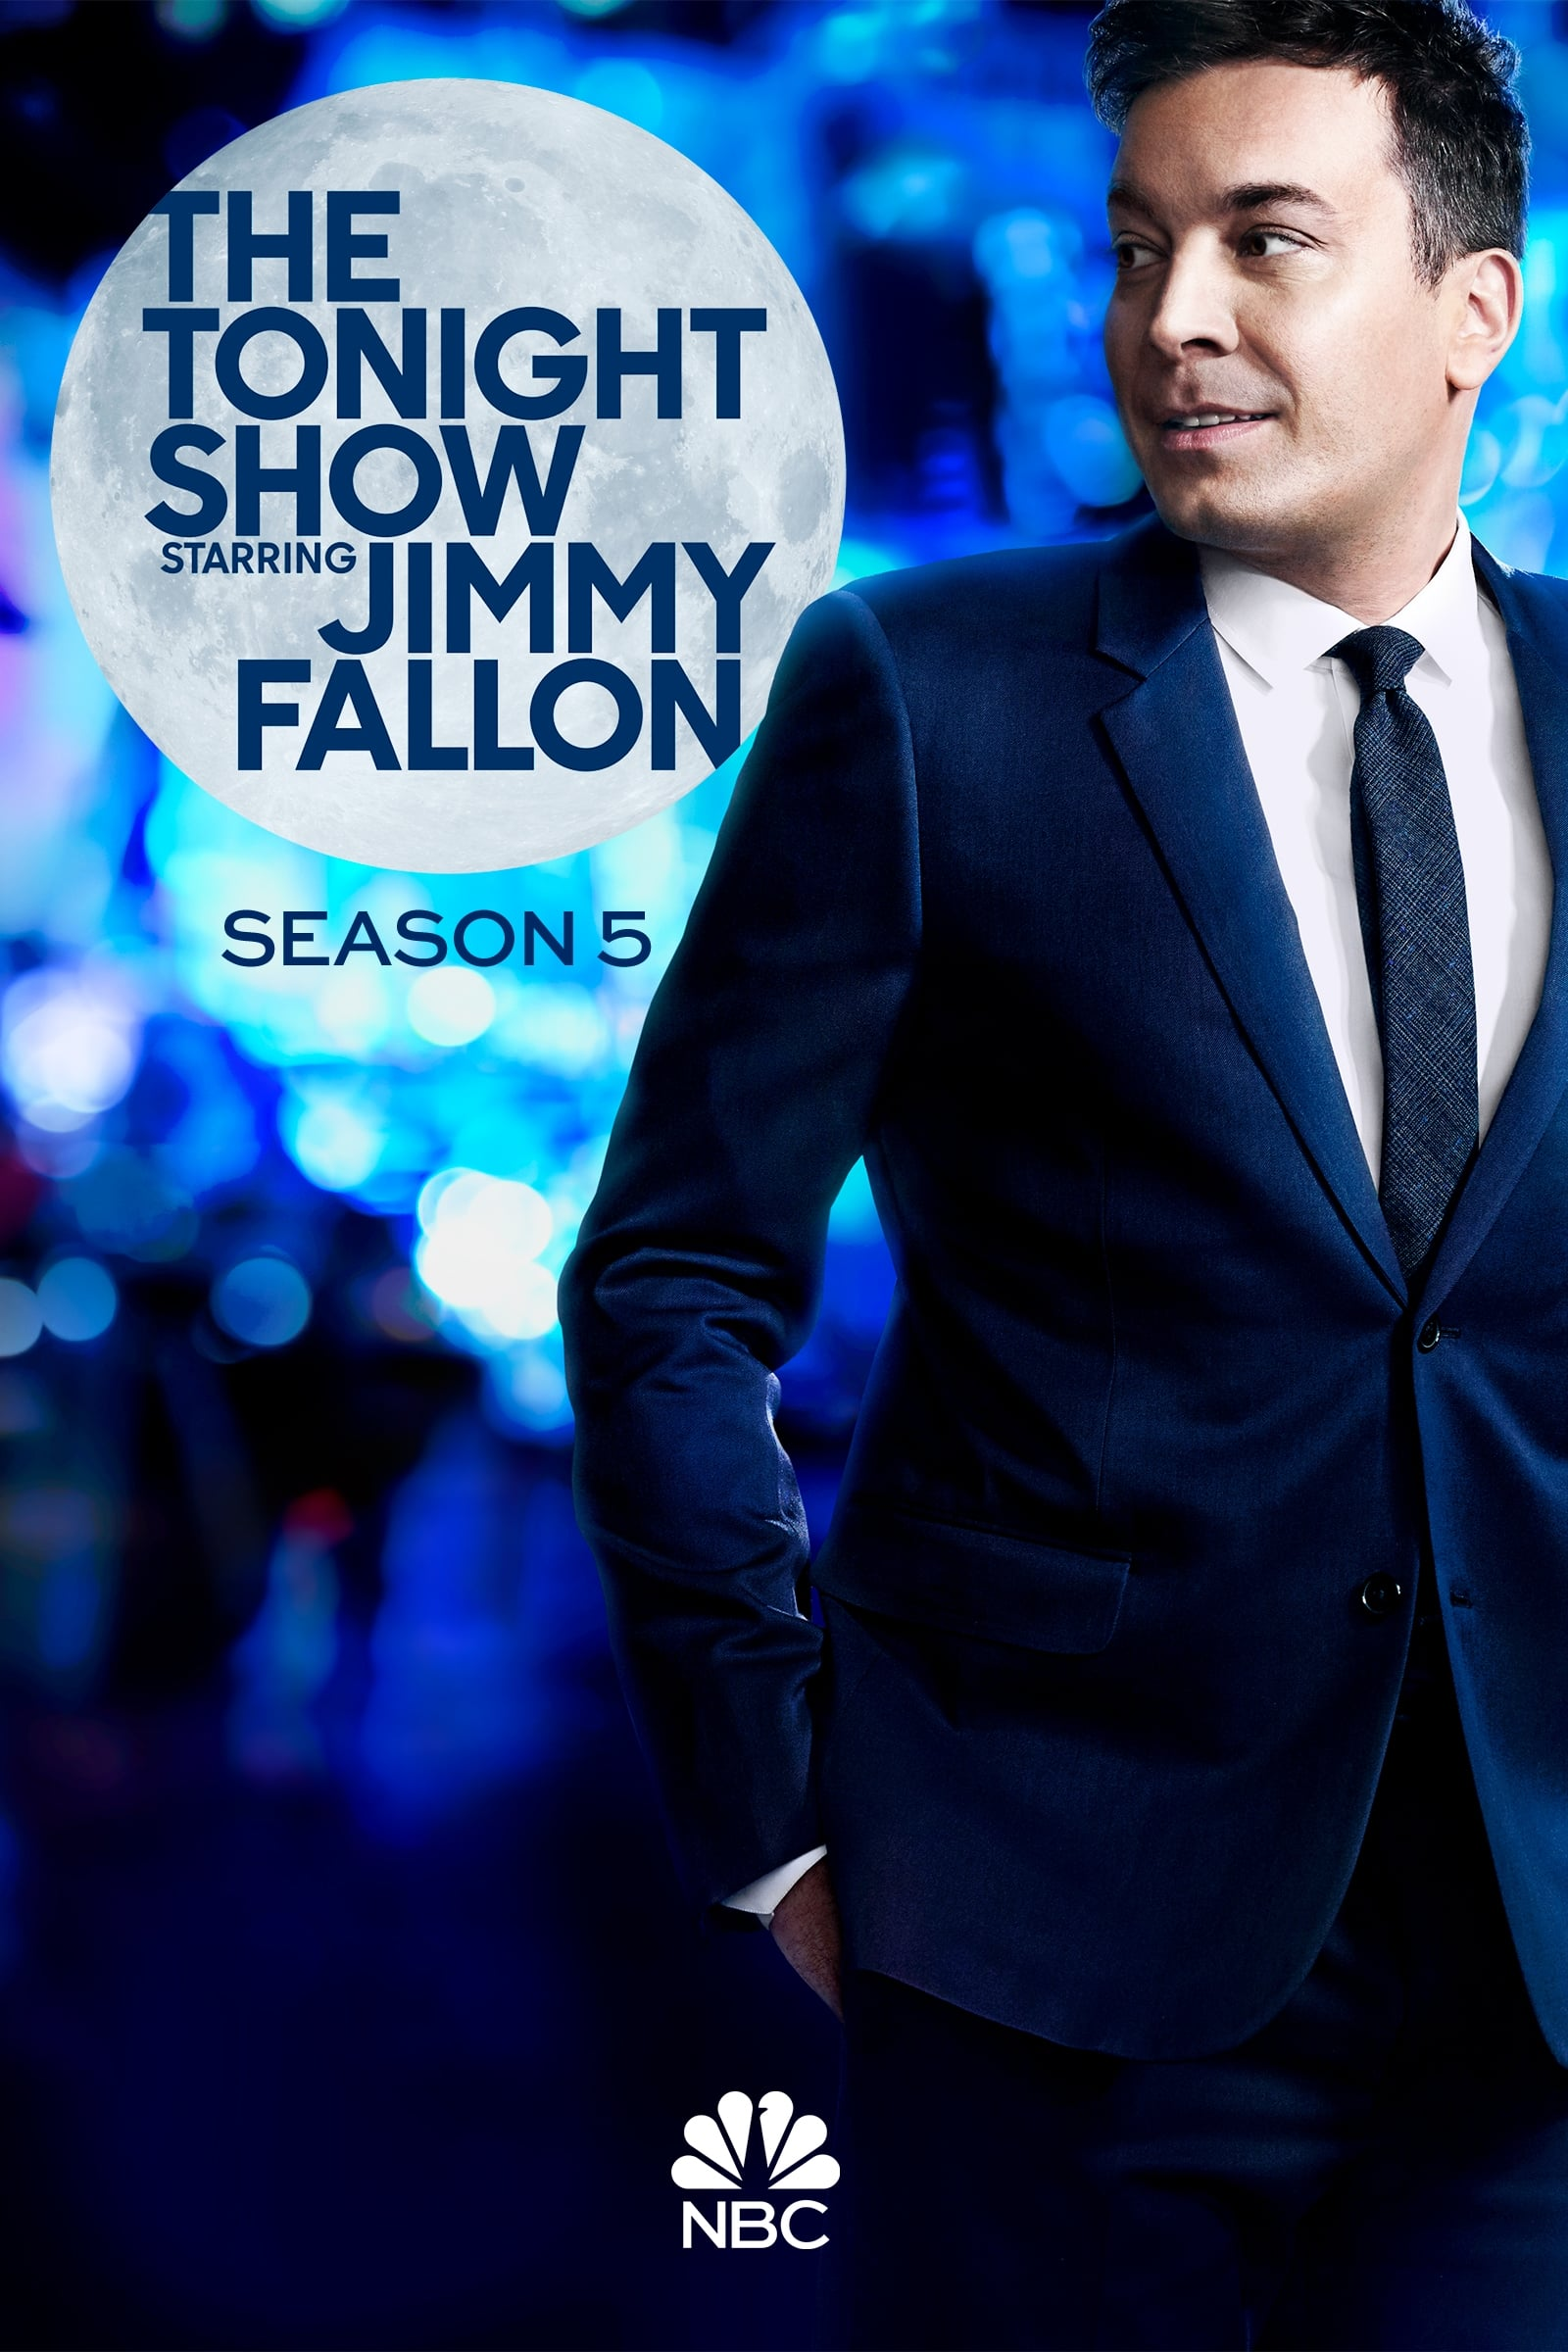 The Tonight Show Starring Jimmy Fallon Season 5